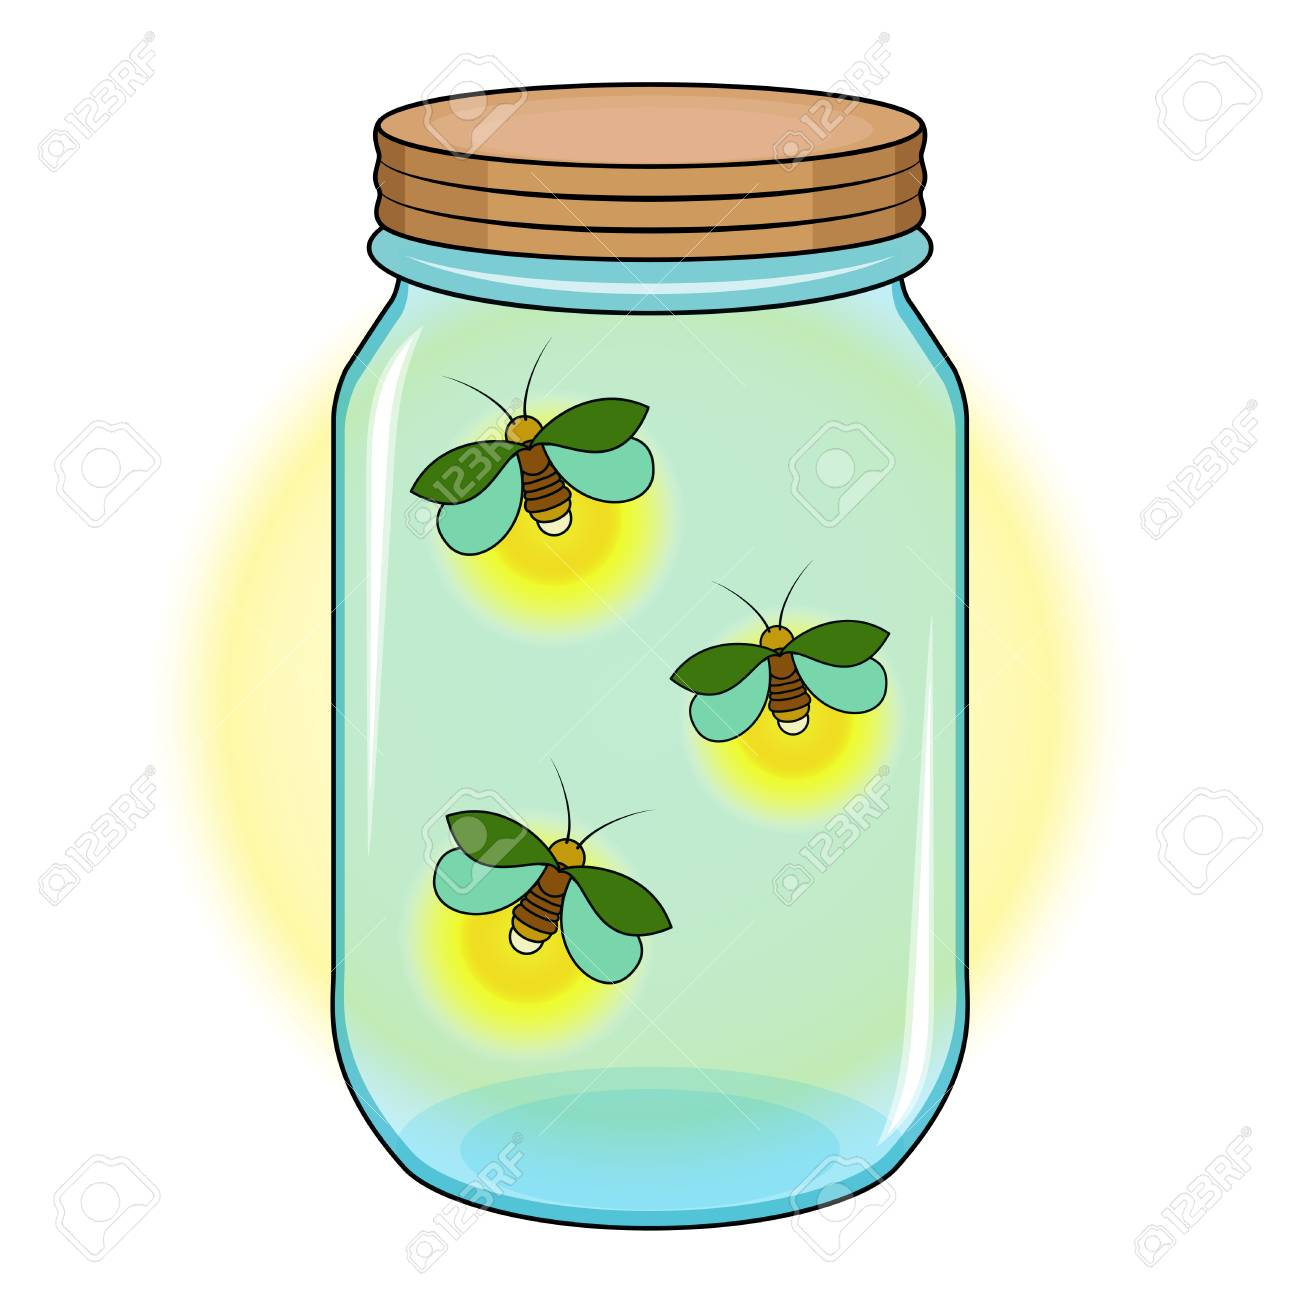 Firefly Jar Art Bank With Fireflies Green Firefly In A Blue Jar